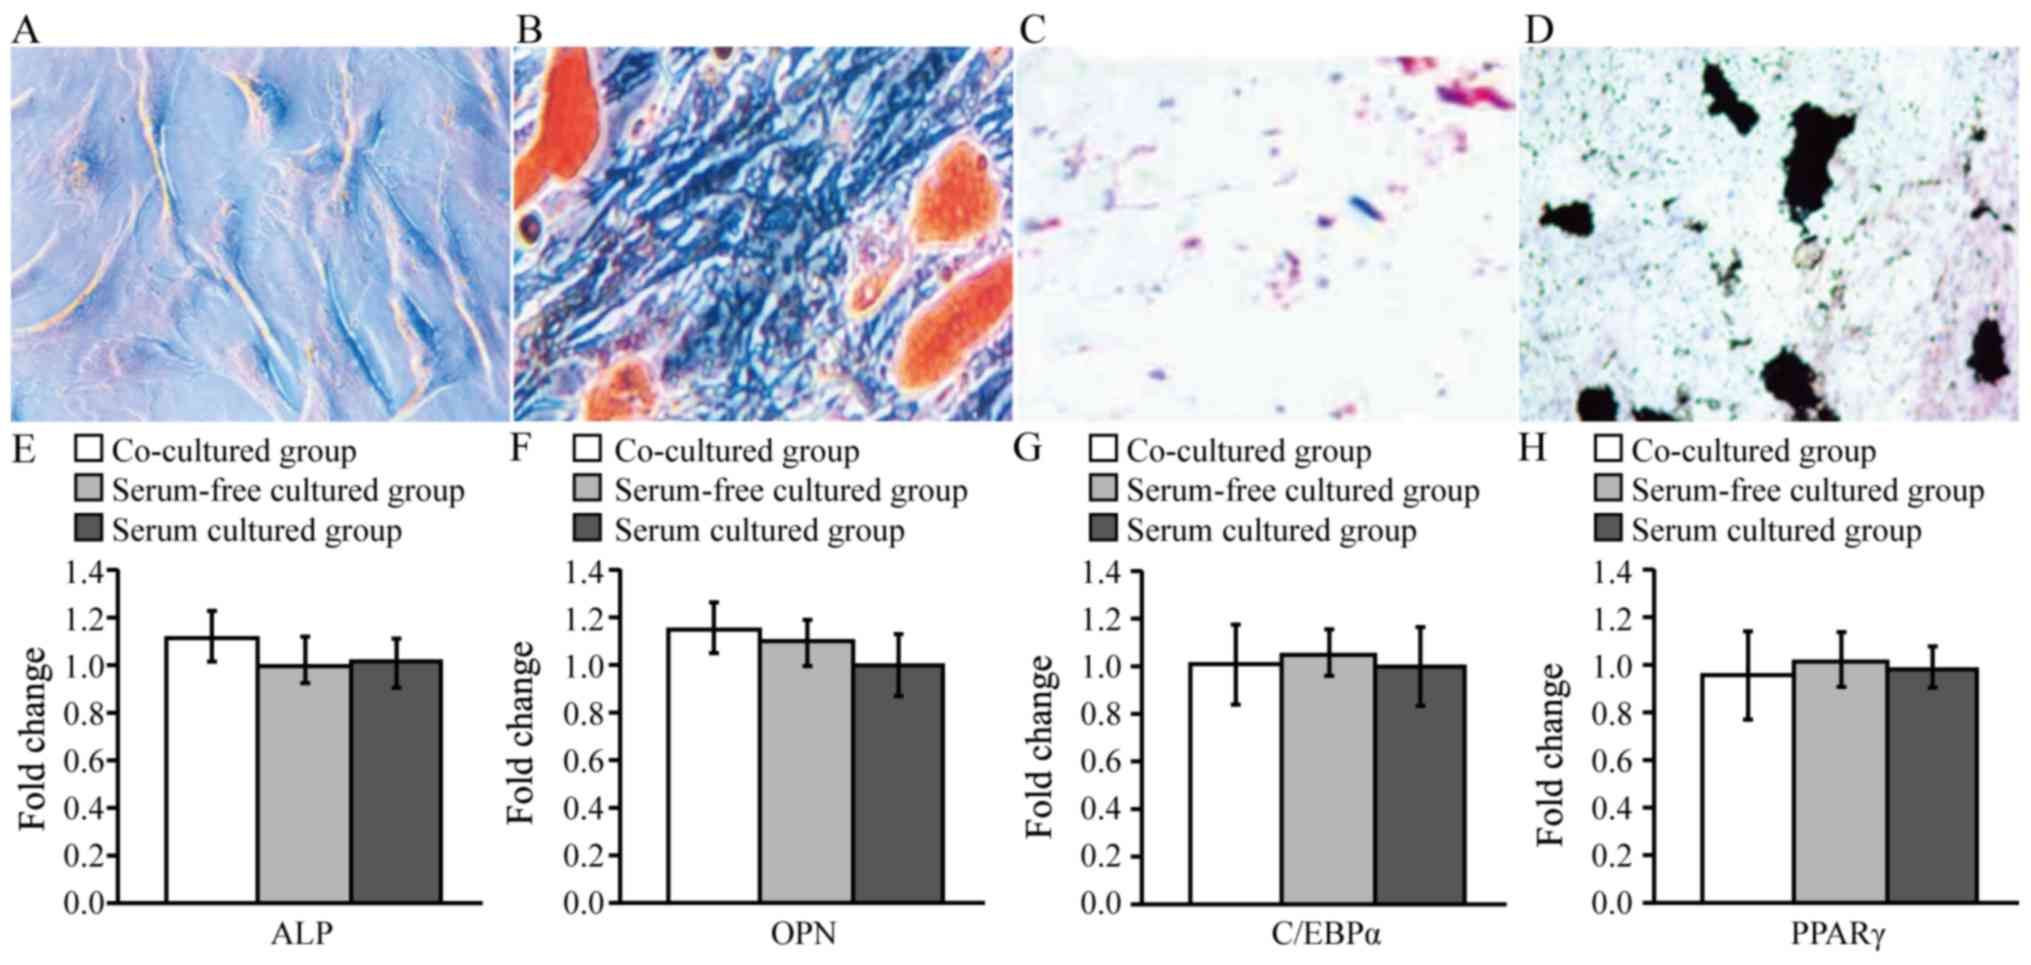 Effect Of Coculture With Amniotic Epithelial Cells On The Crystal Change Rc Boat Groups Mrna Expression E Alp And F Opn Osteogenic Markers Or G C Ebp H Ppar Adipogenic Among Three At 72 Culture